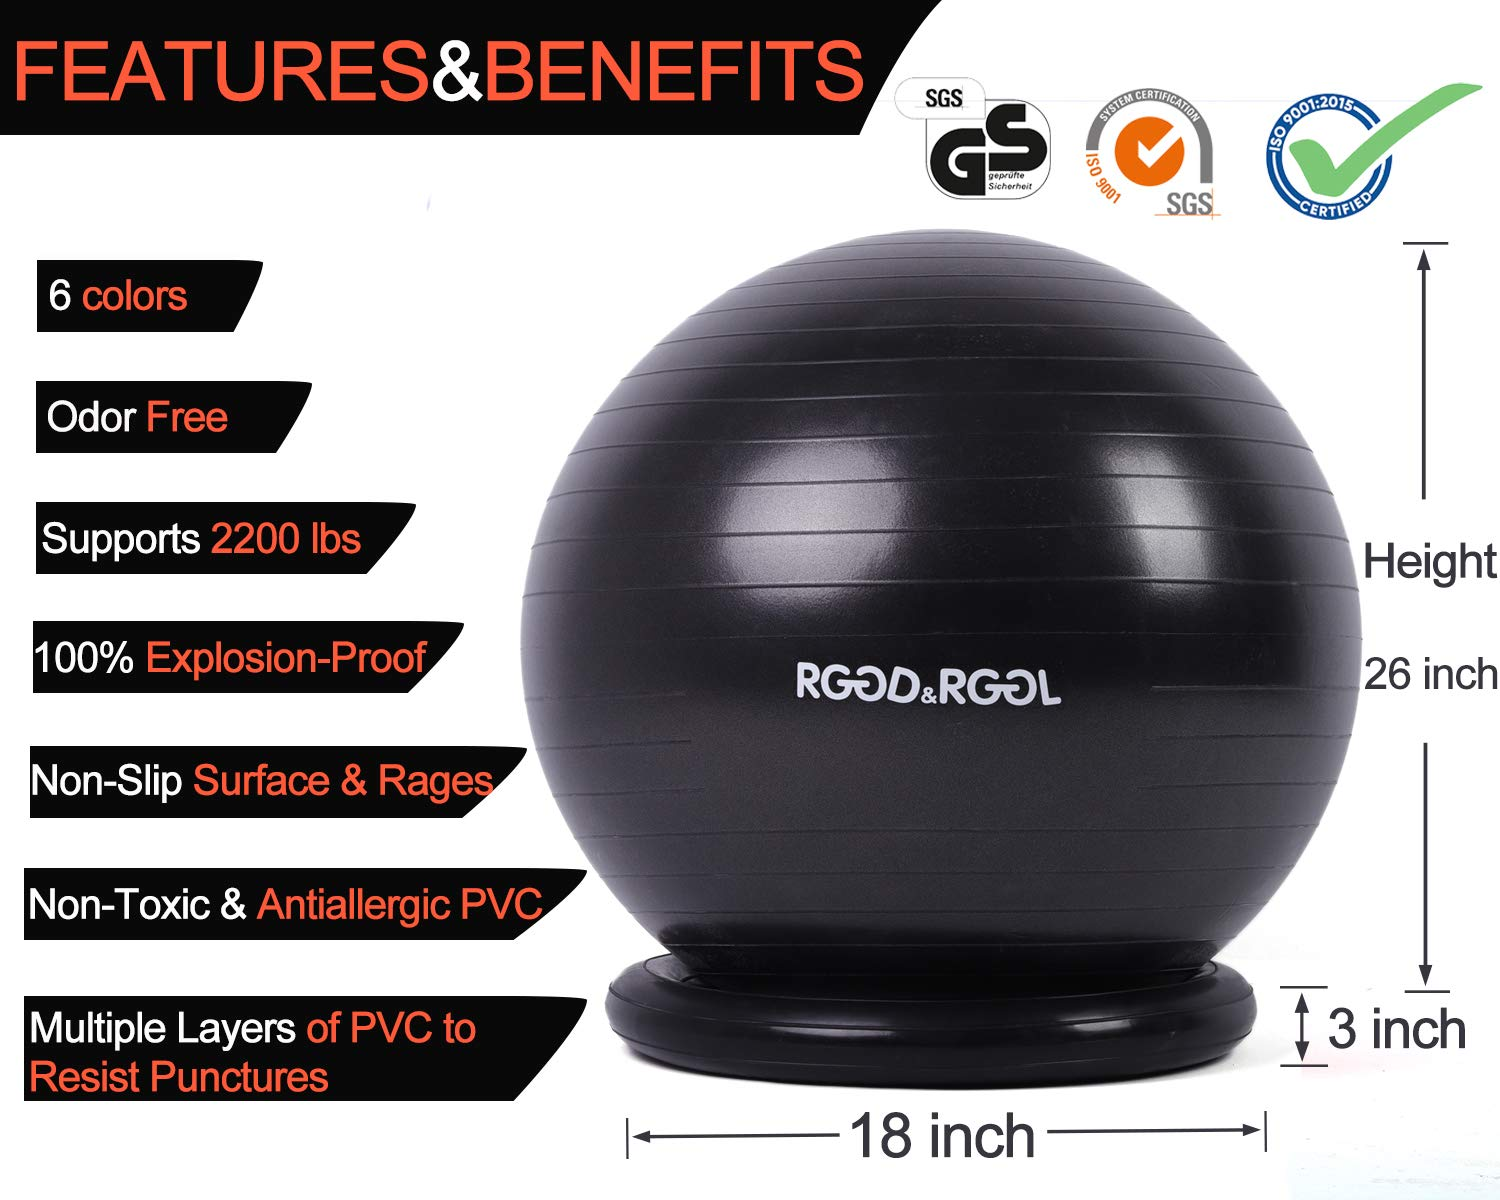 RGGD&RGGL Yoga Ball Chair, Exercise Balance Ball Chair 65cm with Inflatable Stability Ring, 2 Resistant Bands and Pump for Core Strength and Endurance by RGGD&RGGL (Image #3)